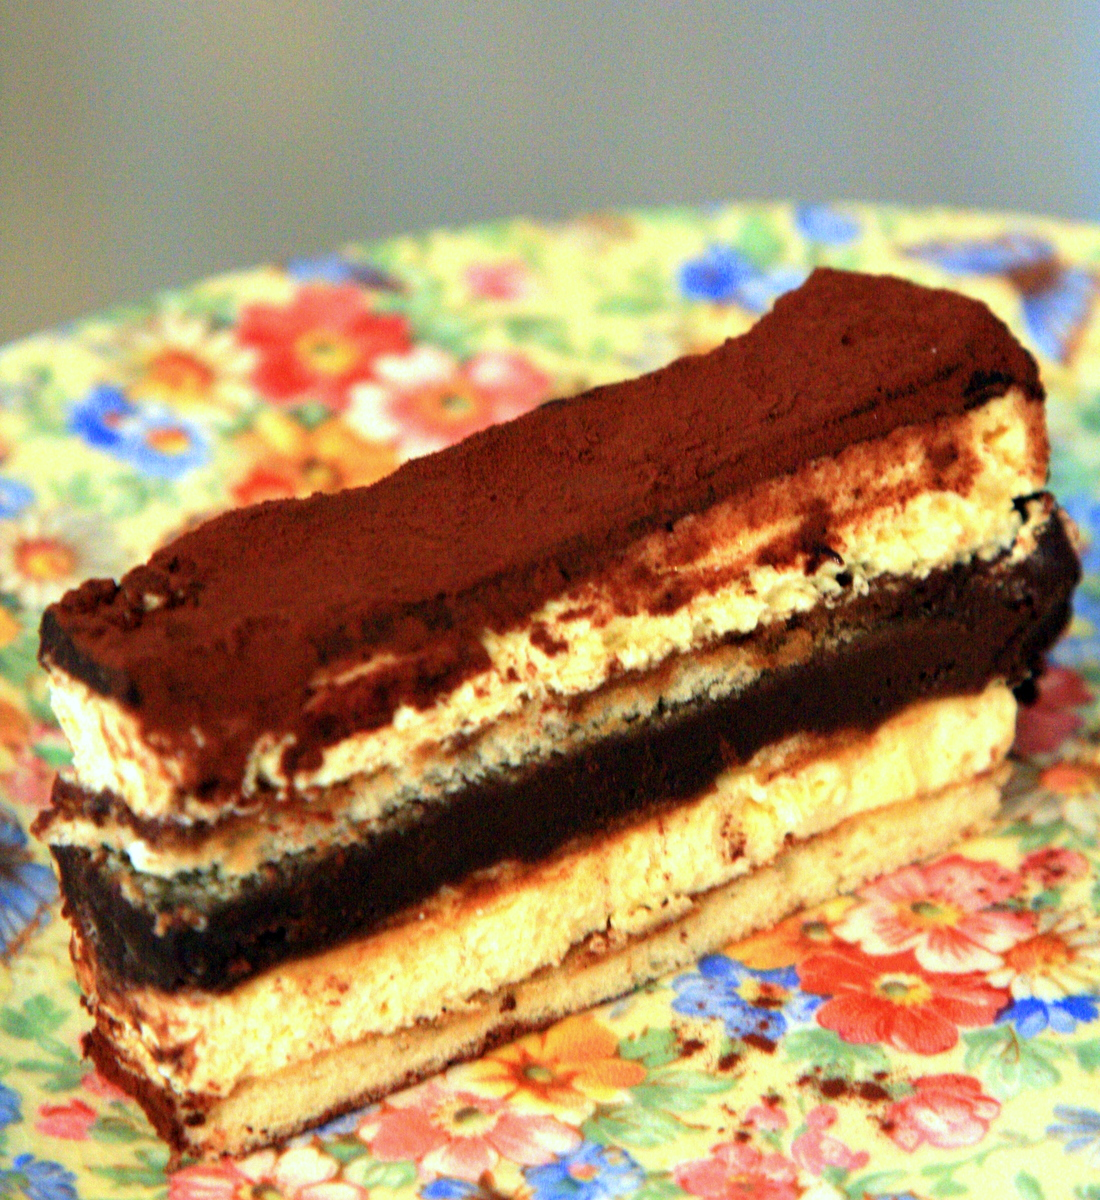 Opera Cake from Sweet Infinity